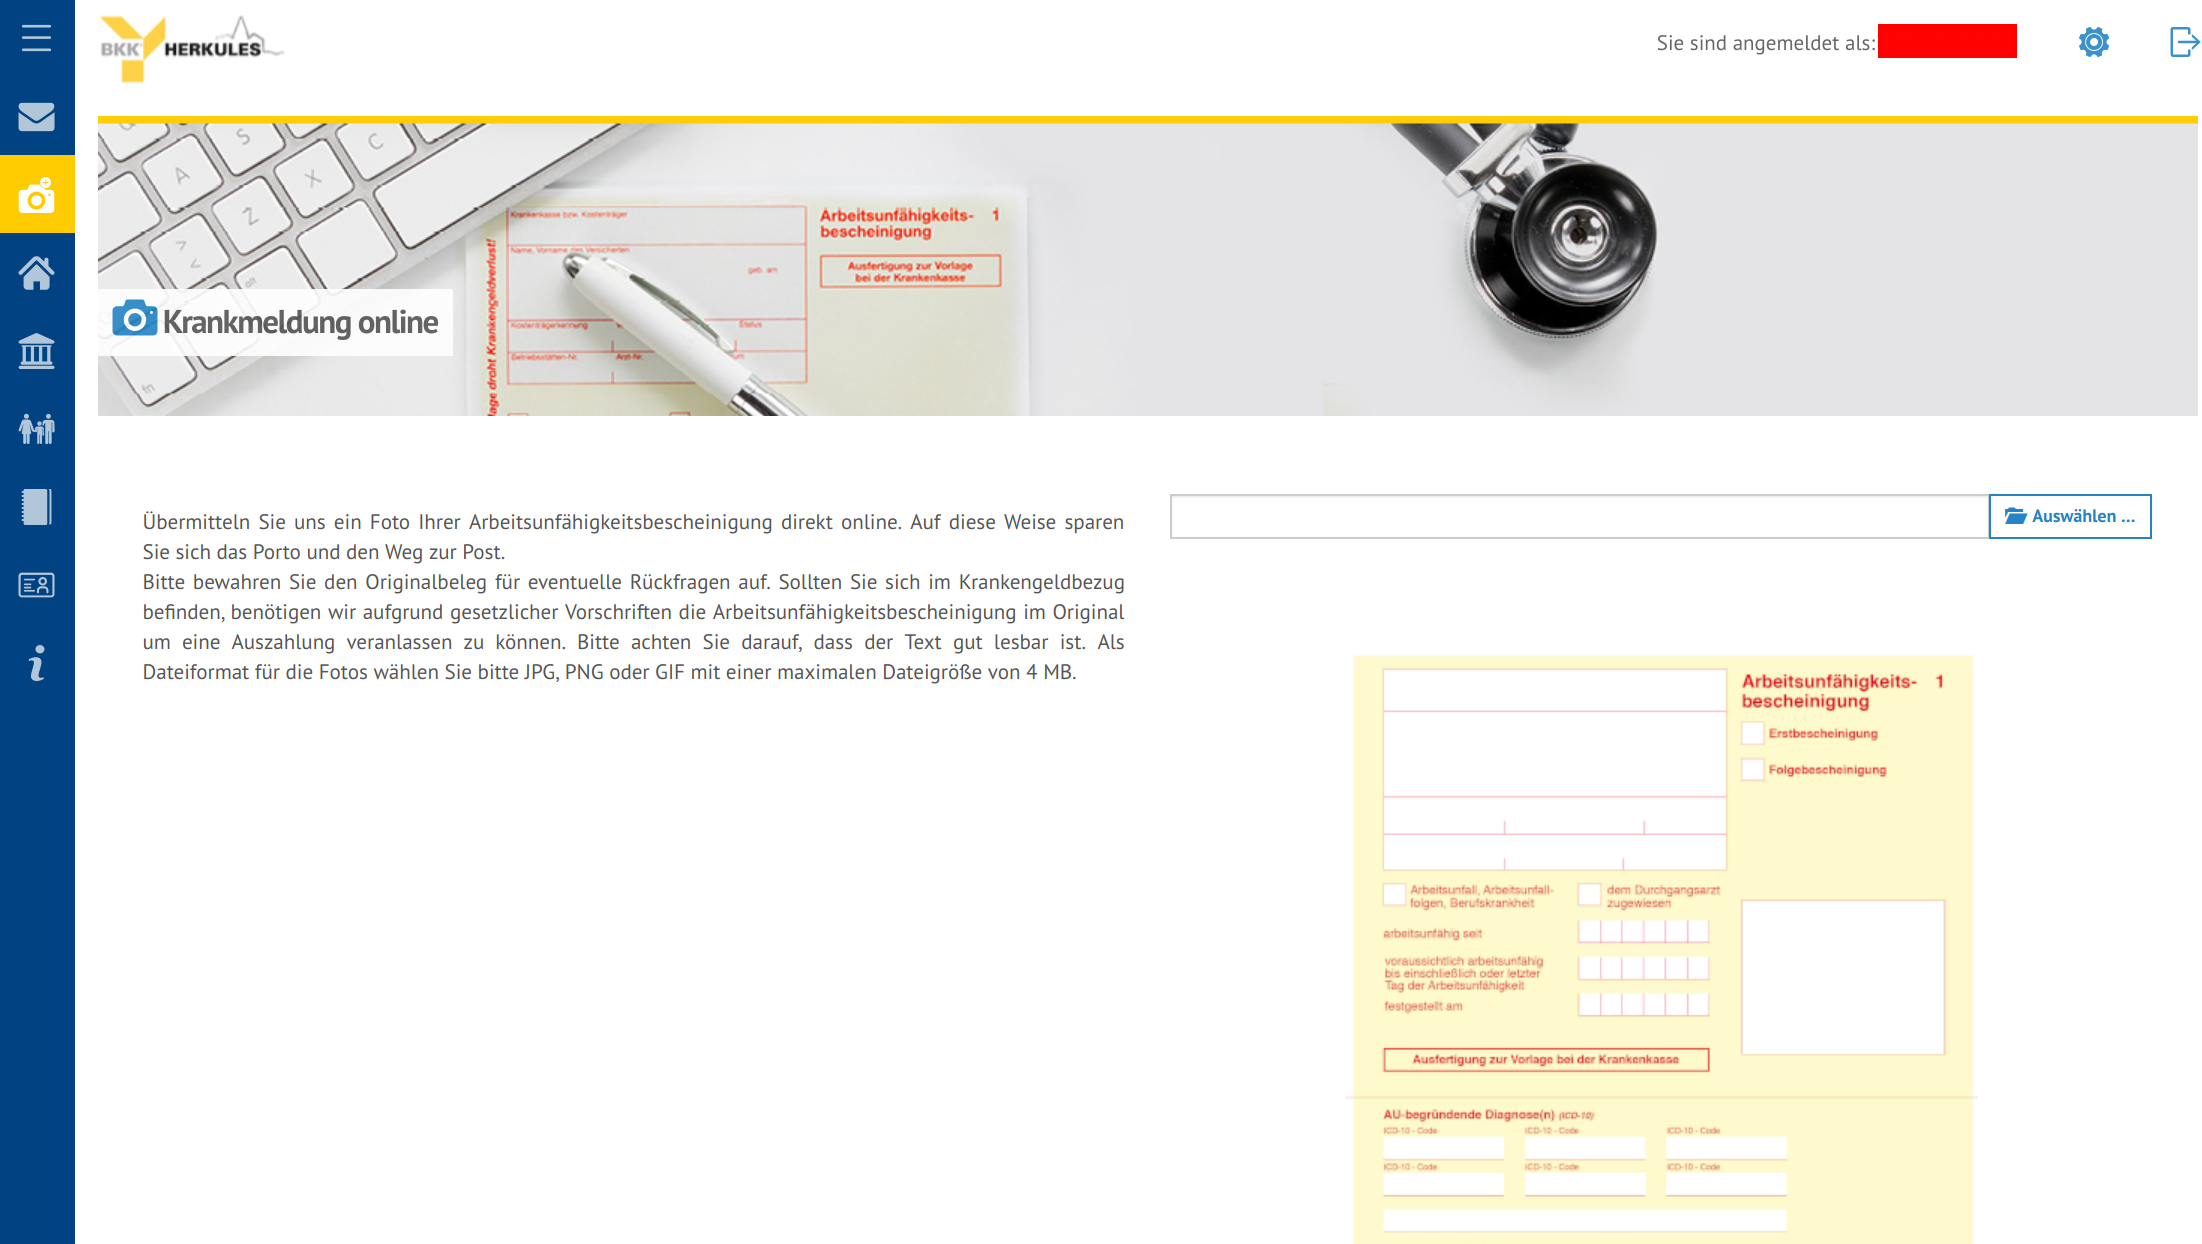 BKK Web Interface